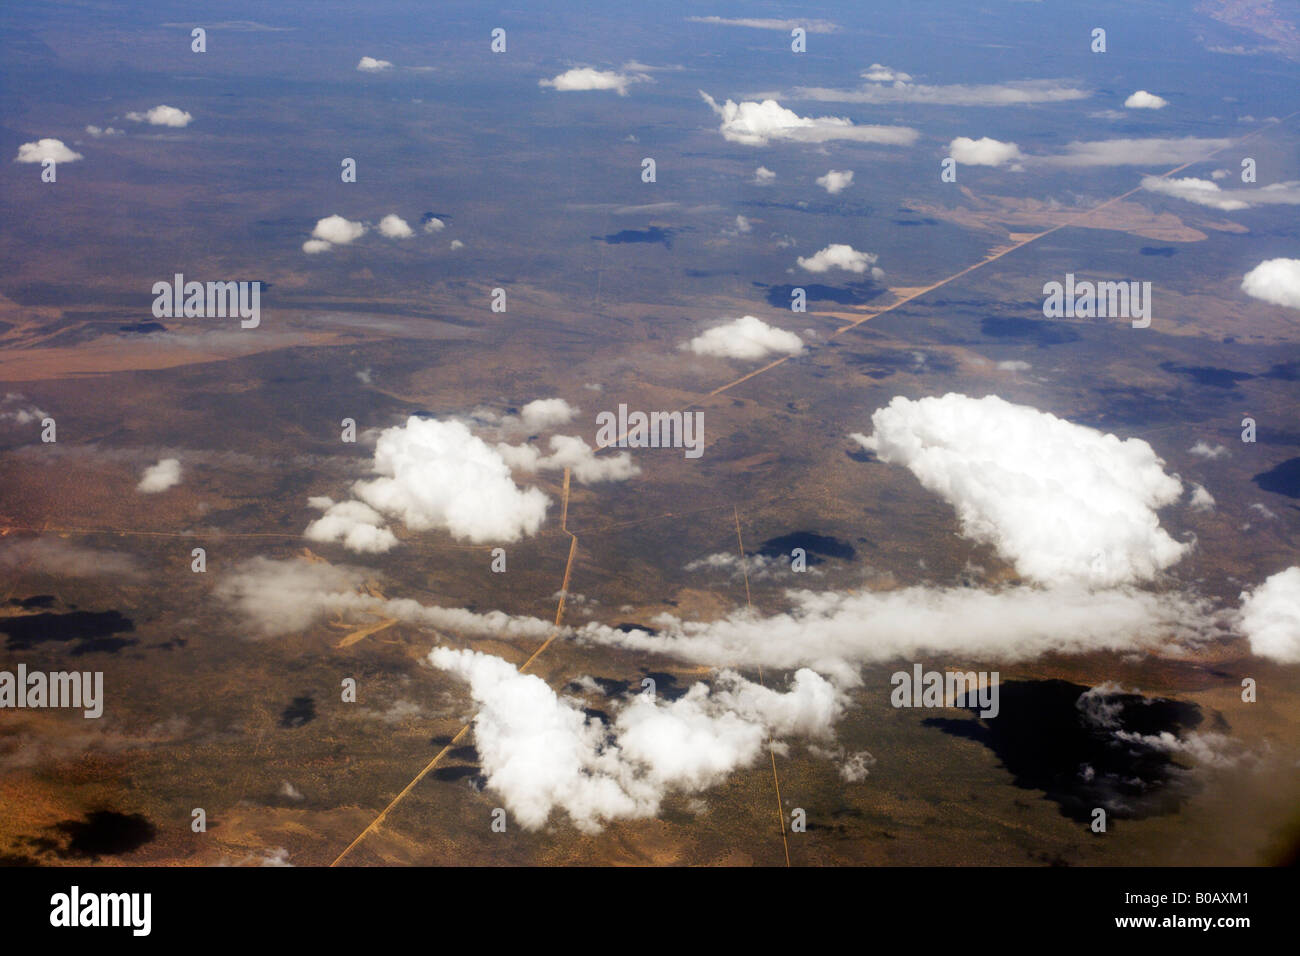 View of a road cutting across the Western Australian desert at 40,000 feet from an airliner. - Stock Image